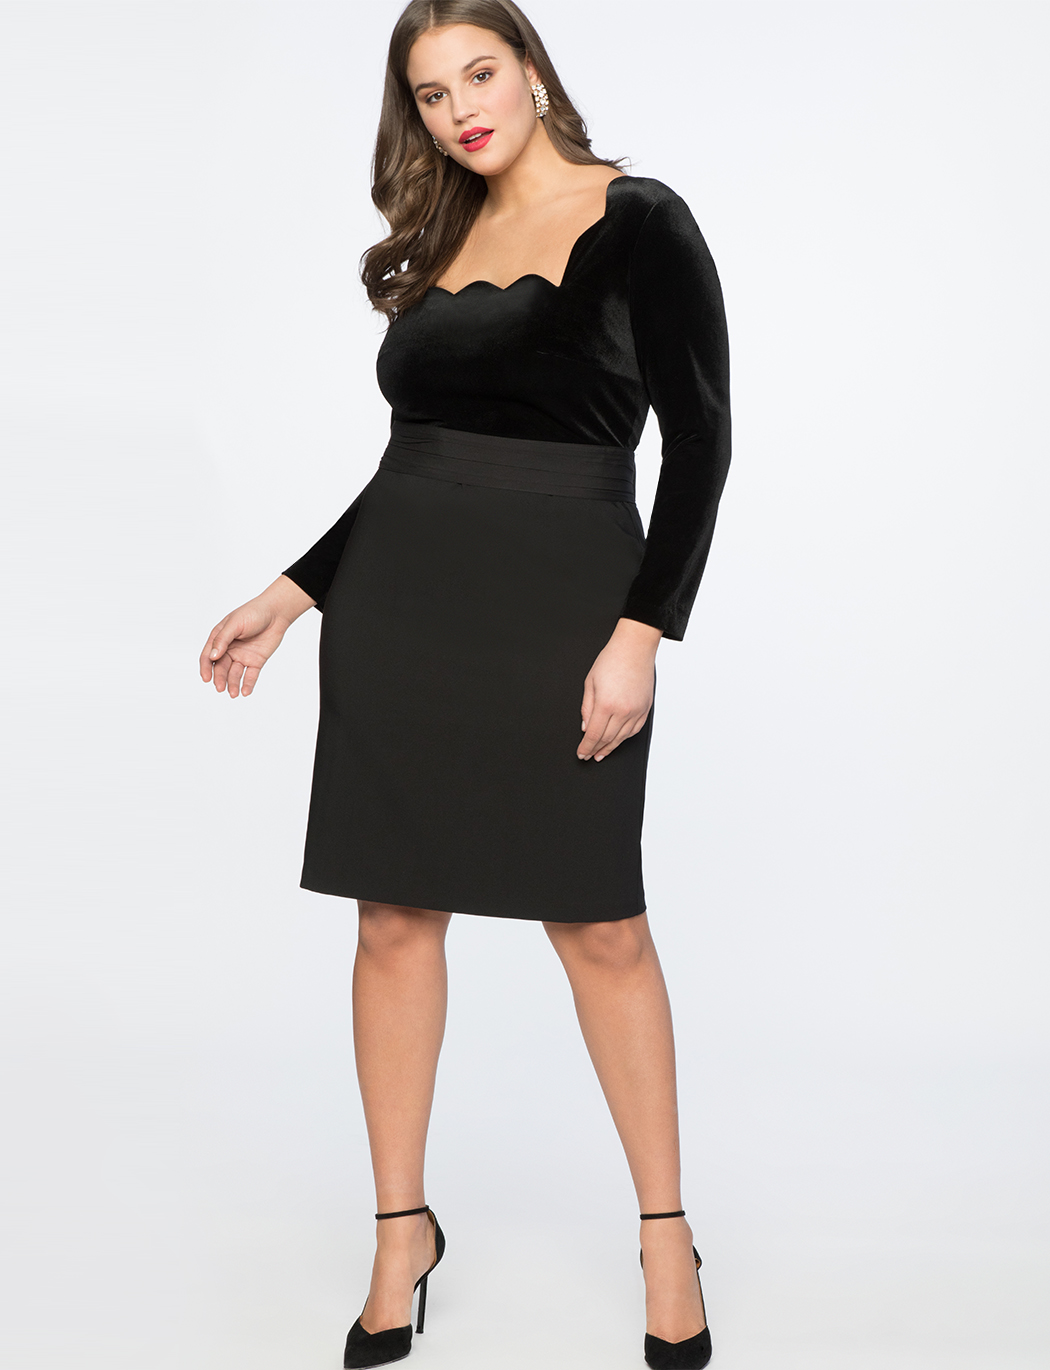 Scallop Neckline Sheath Dress